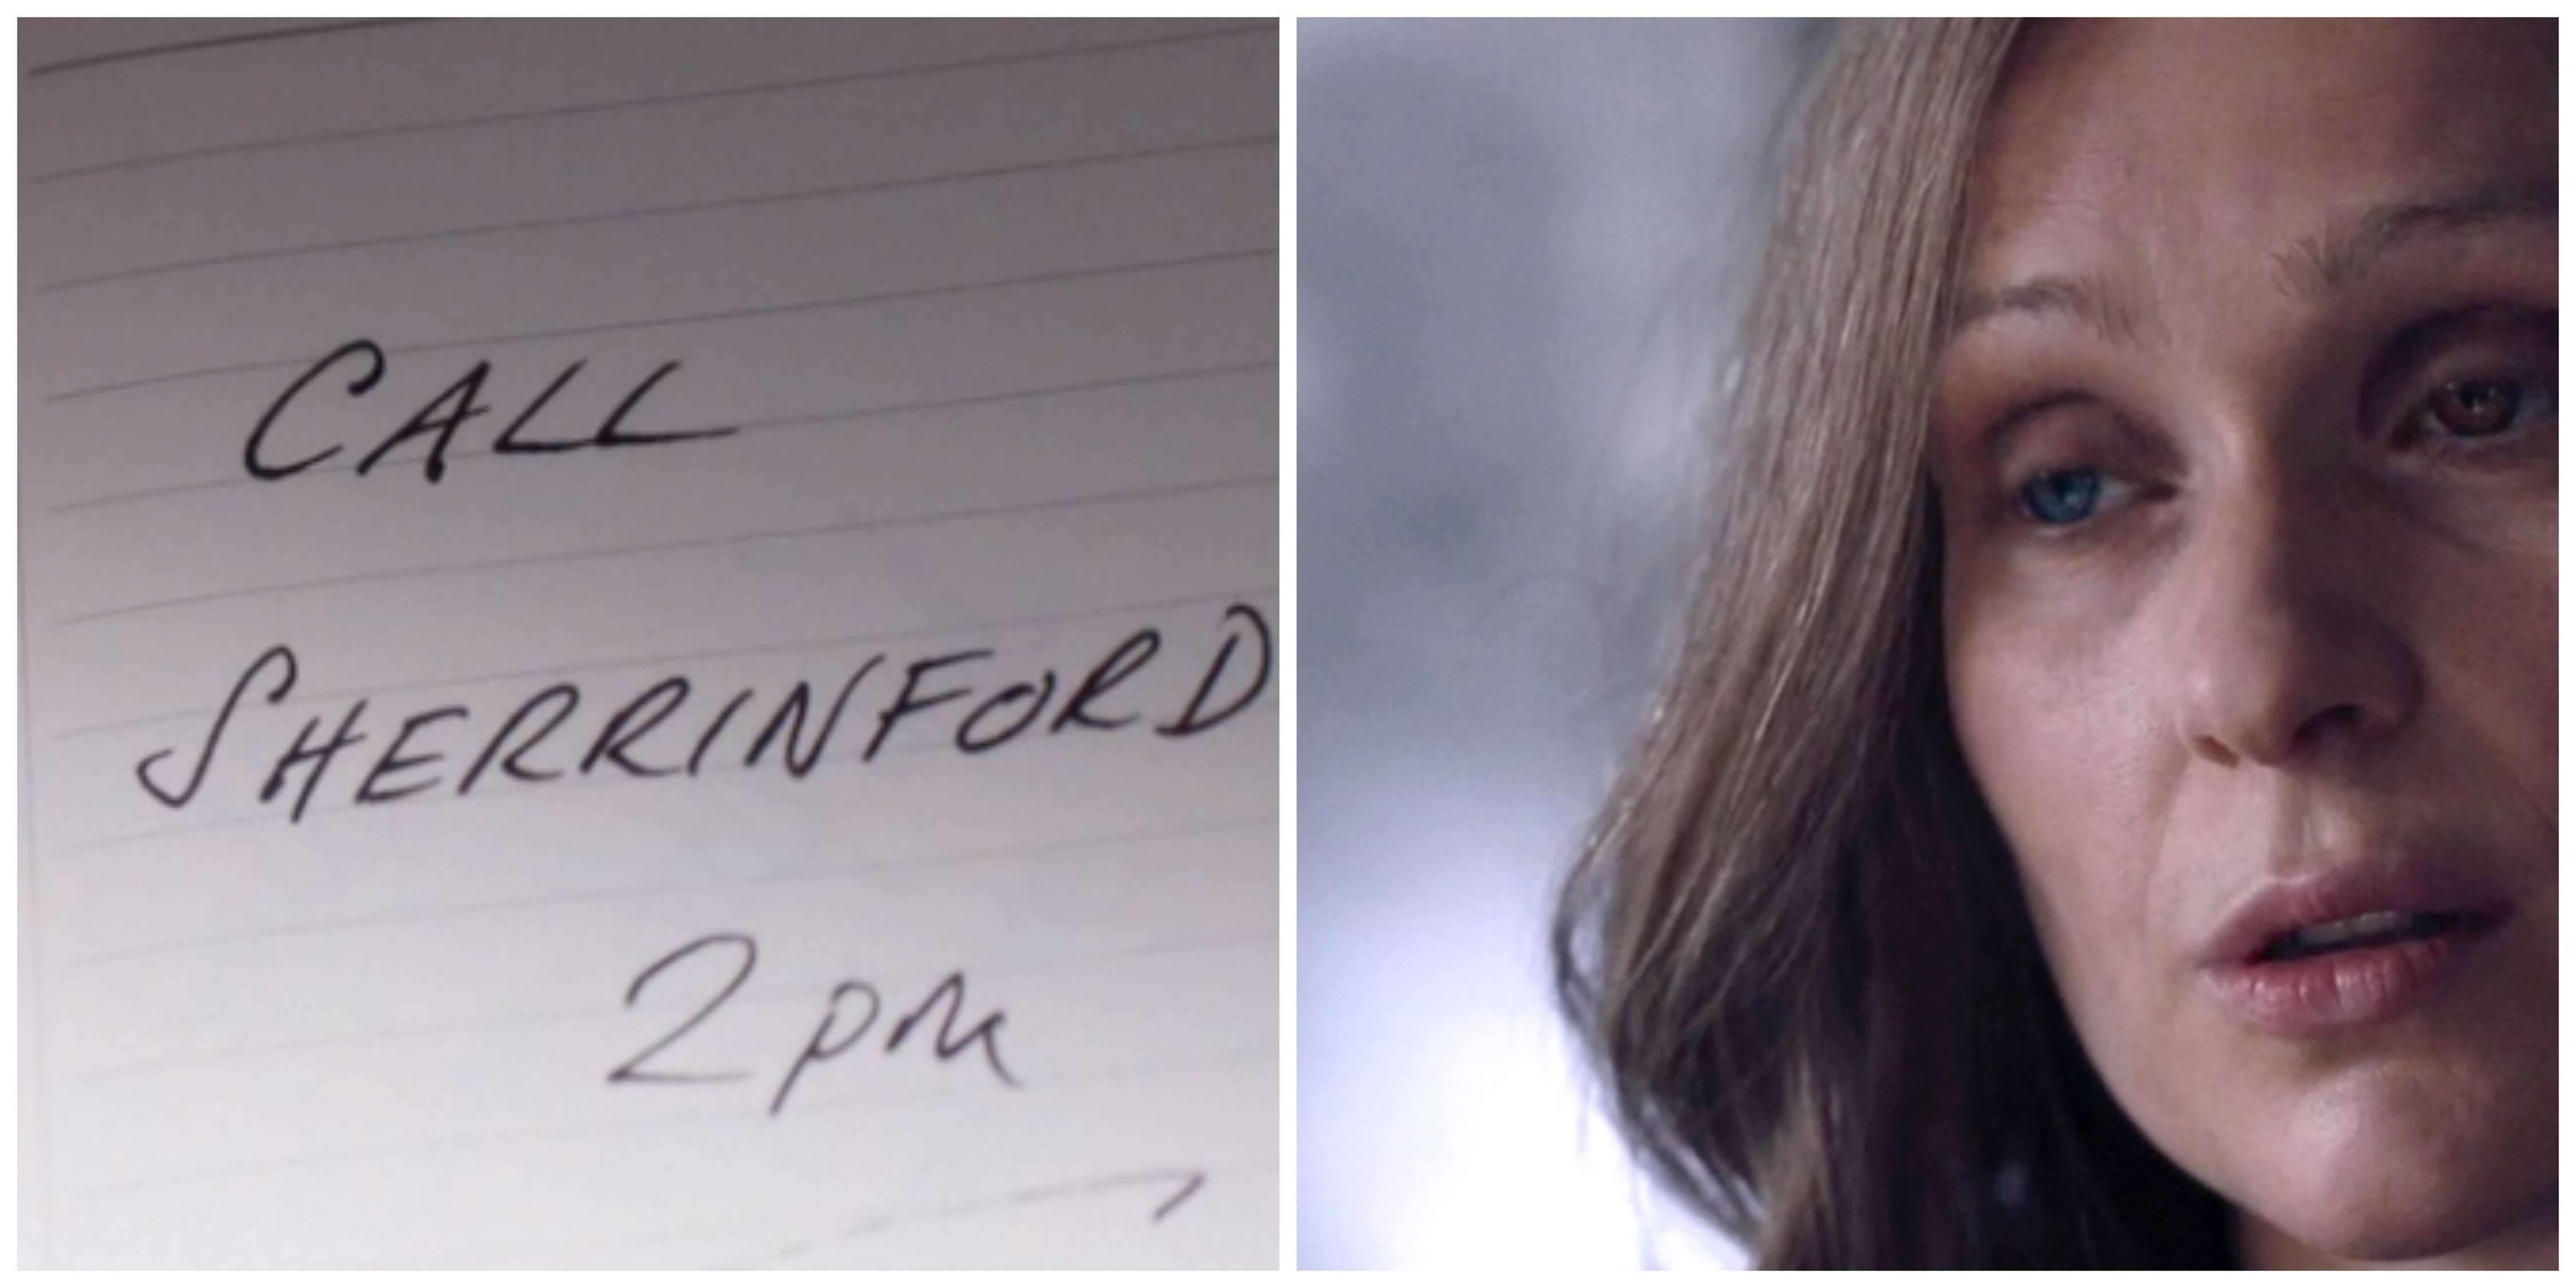 Mycroft's note about Sherrinford PLUS Sherrinford, revealed.